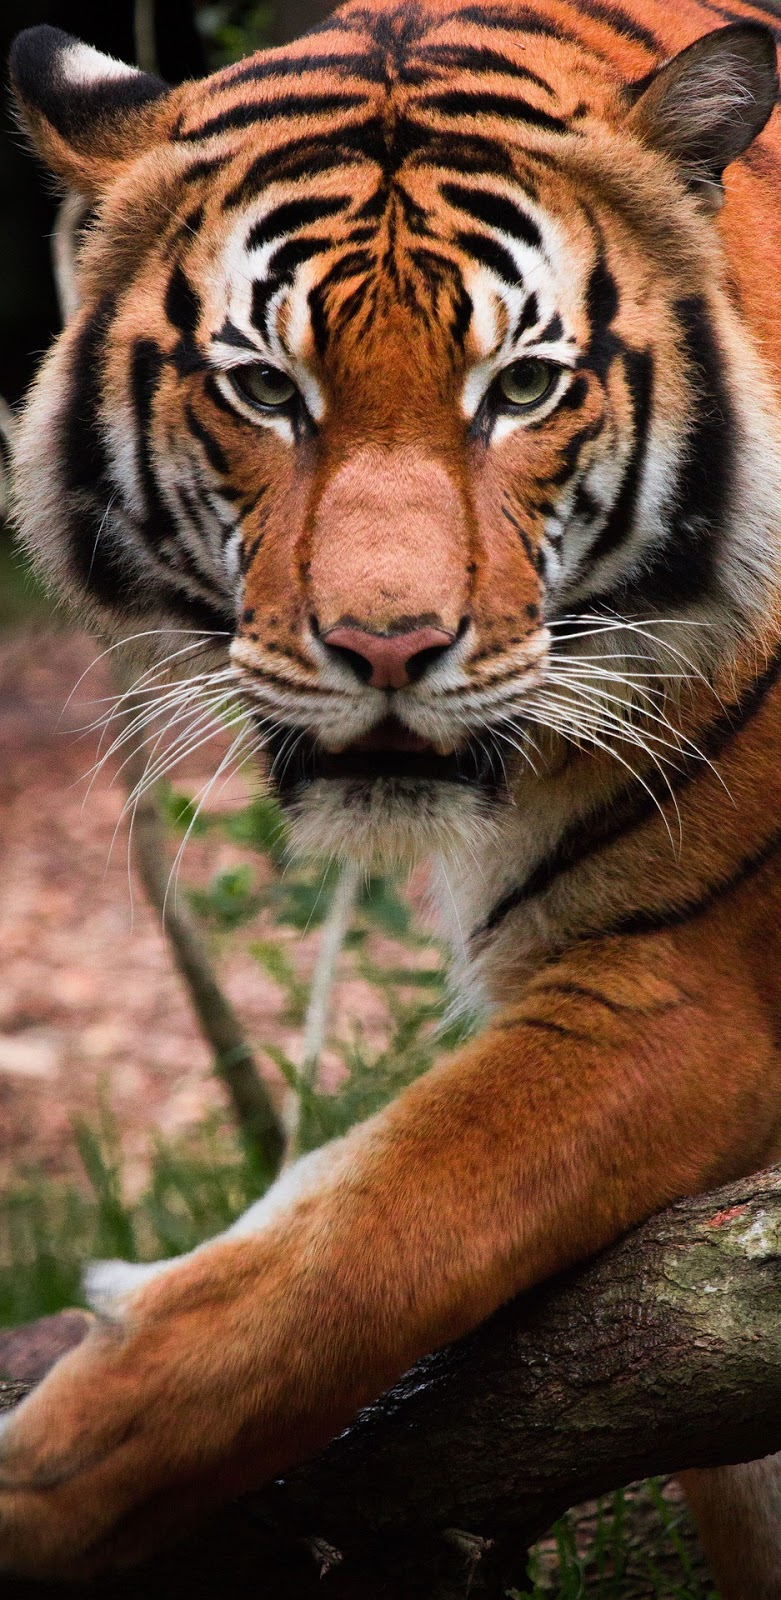 Photo of a majestic tiger.